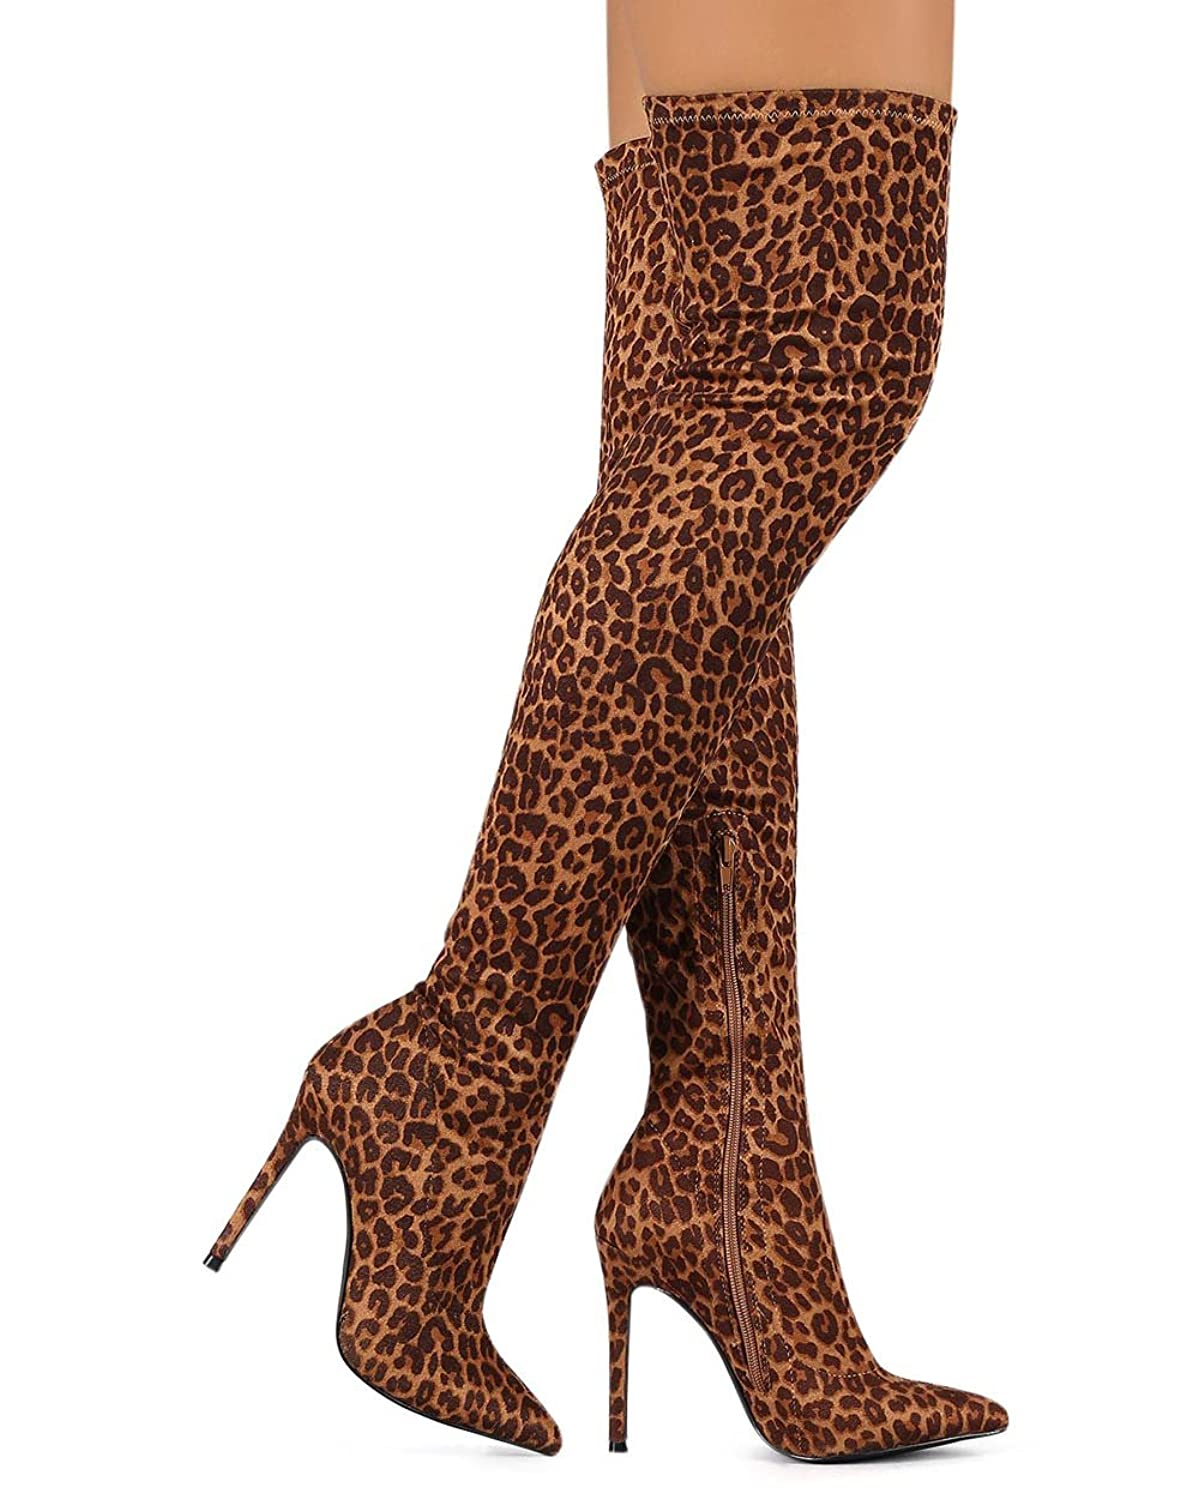 Liliana DB55 Women Pointy Toe Thigh High Single Sole Stiletto Boot - Leopard